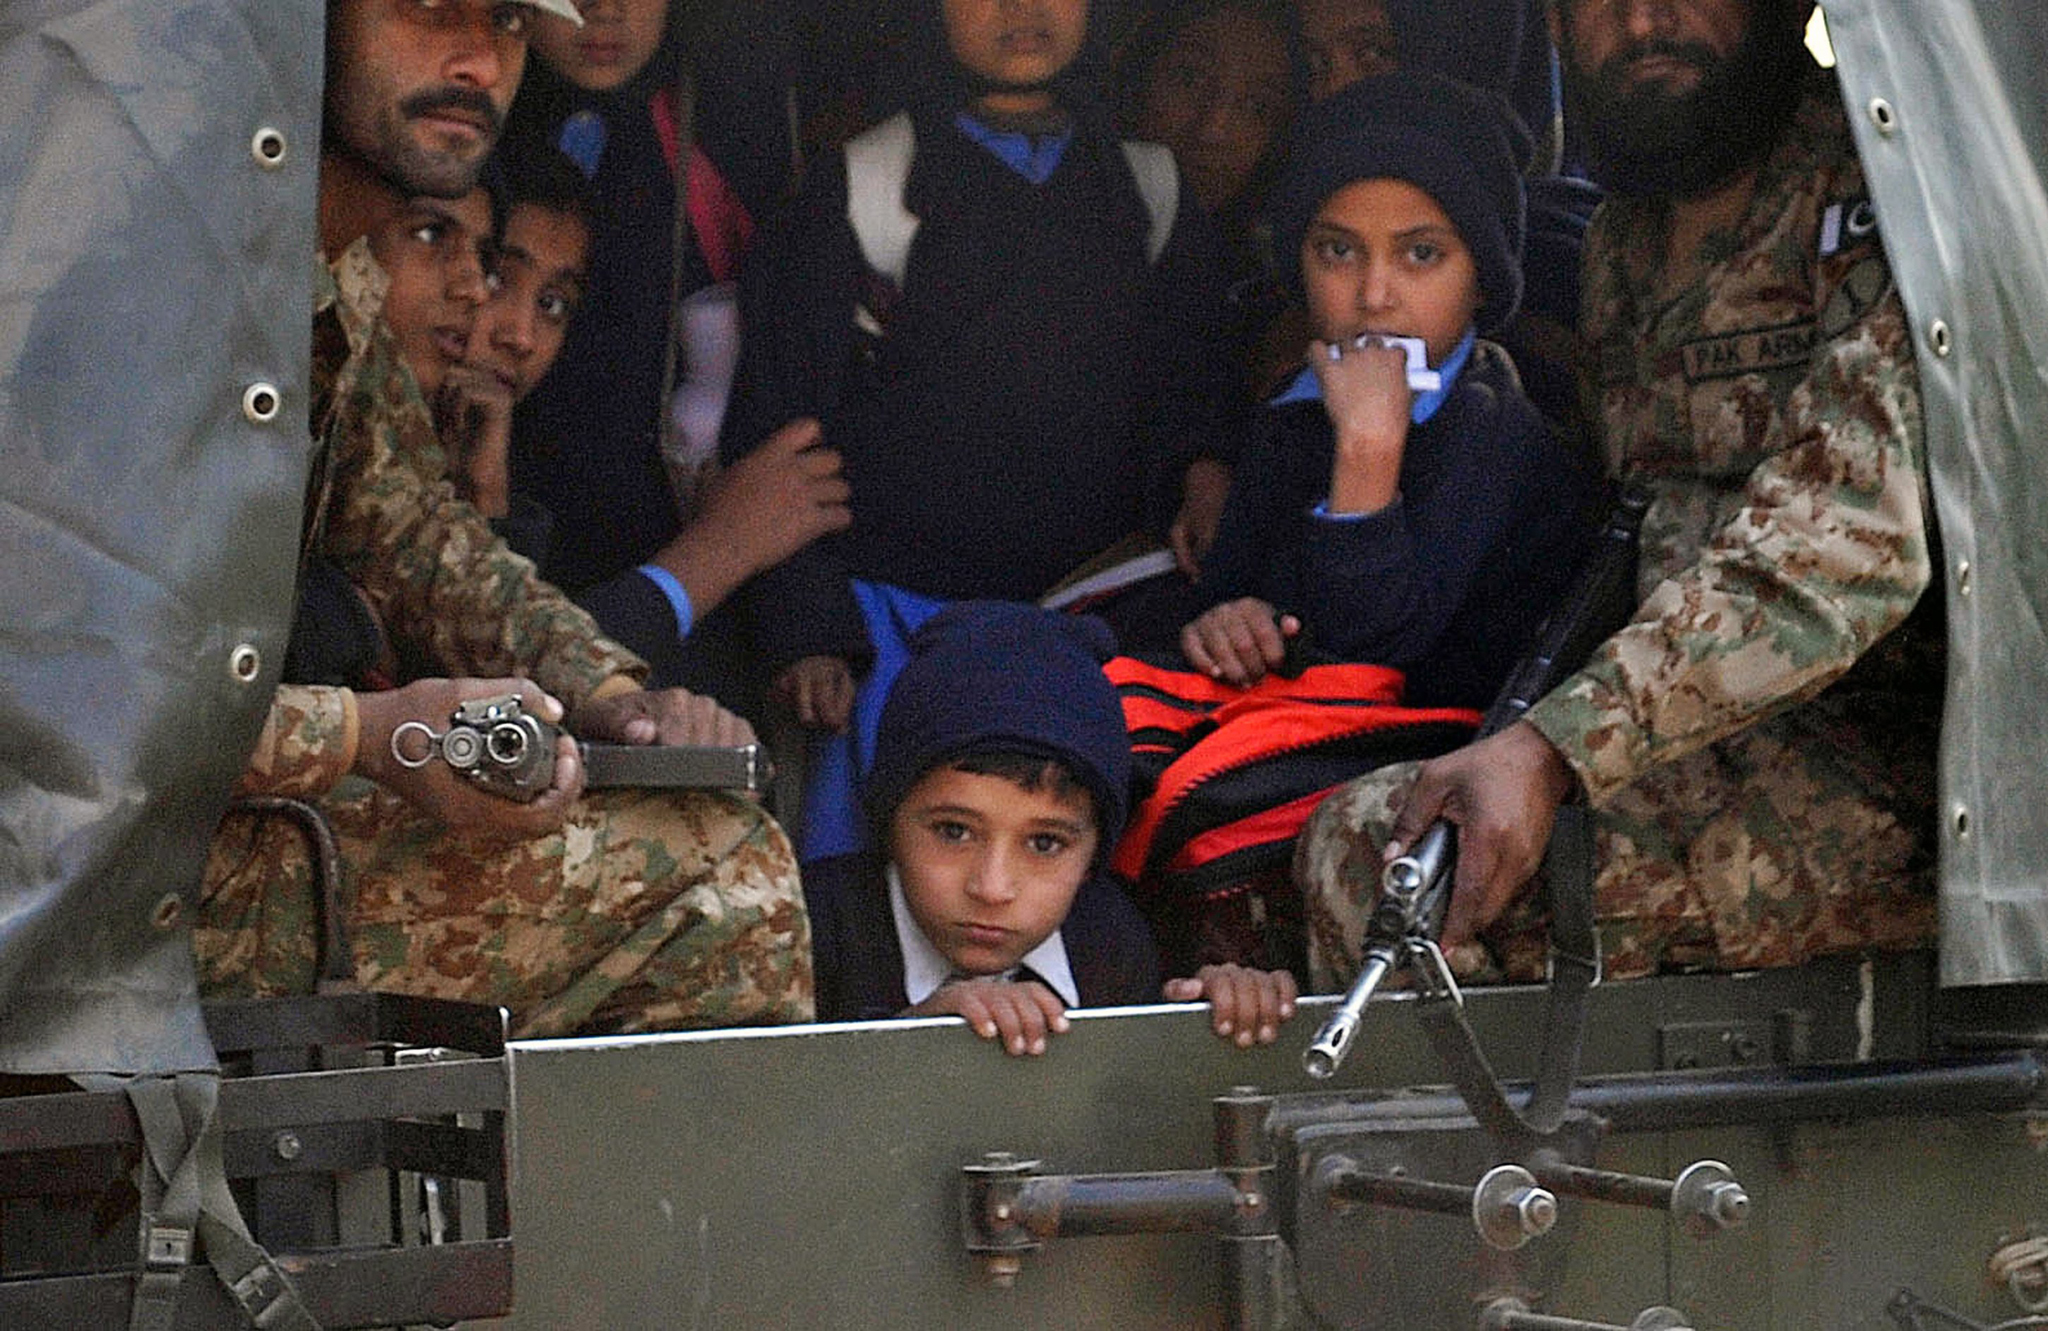 Pakistani soldiers transport rescued school children from the site of an attack by Taliban gunmen on a school in Peshawar on December 16, 2014. Taliban insurgents killed at least 130 people, most of them children, after storming an army-run school in Pakistan December 16 in one of the country's bloodiest attacks in recent years.